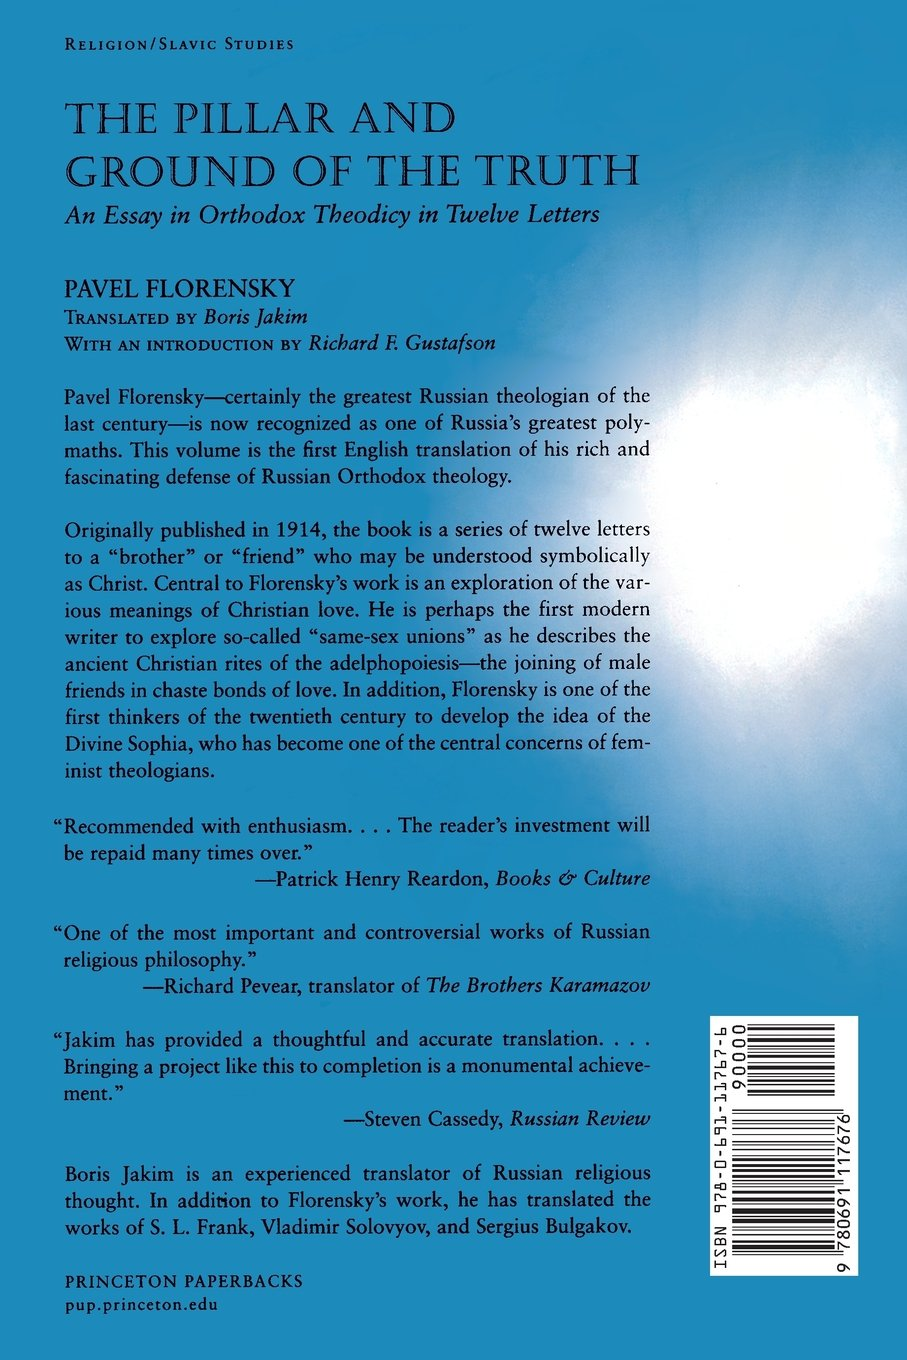 the pillar and ground of the truth an essay in orthodox theodicy the pillar and ground of the truth an essay in orthodox theodicy in twelve letters pavel florensky boris jakim richard f gustafson 9780691117676